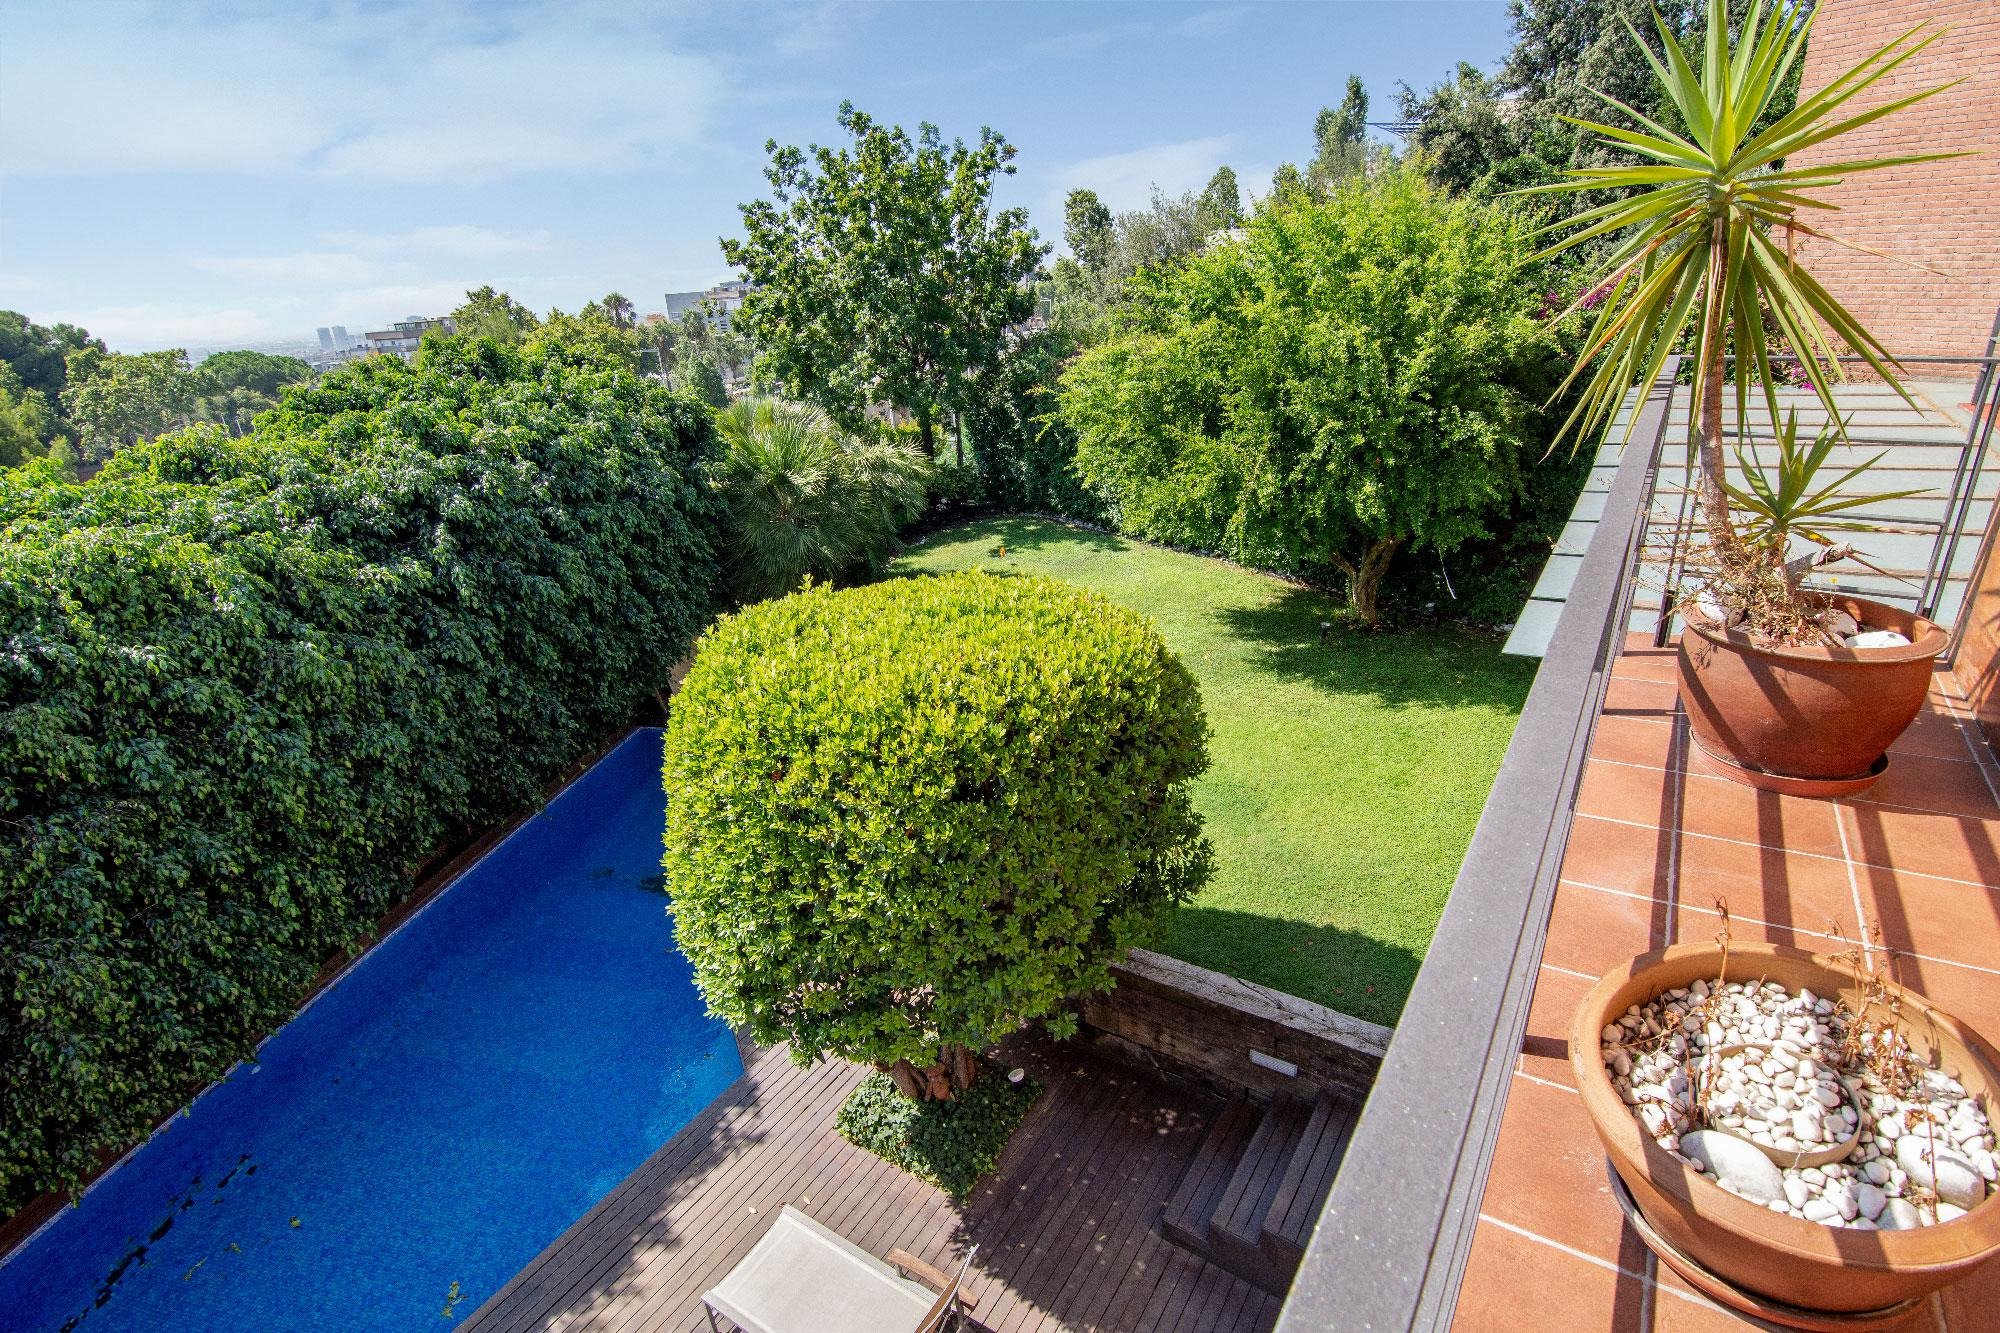 214424 House for sale in Les Corts, Pedralbes 25